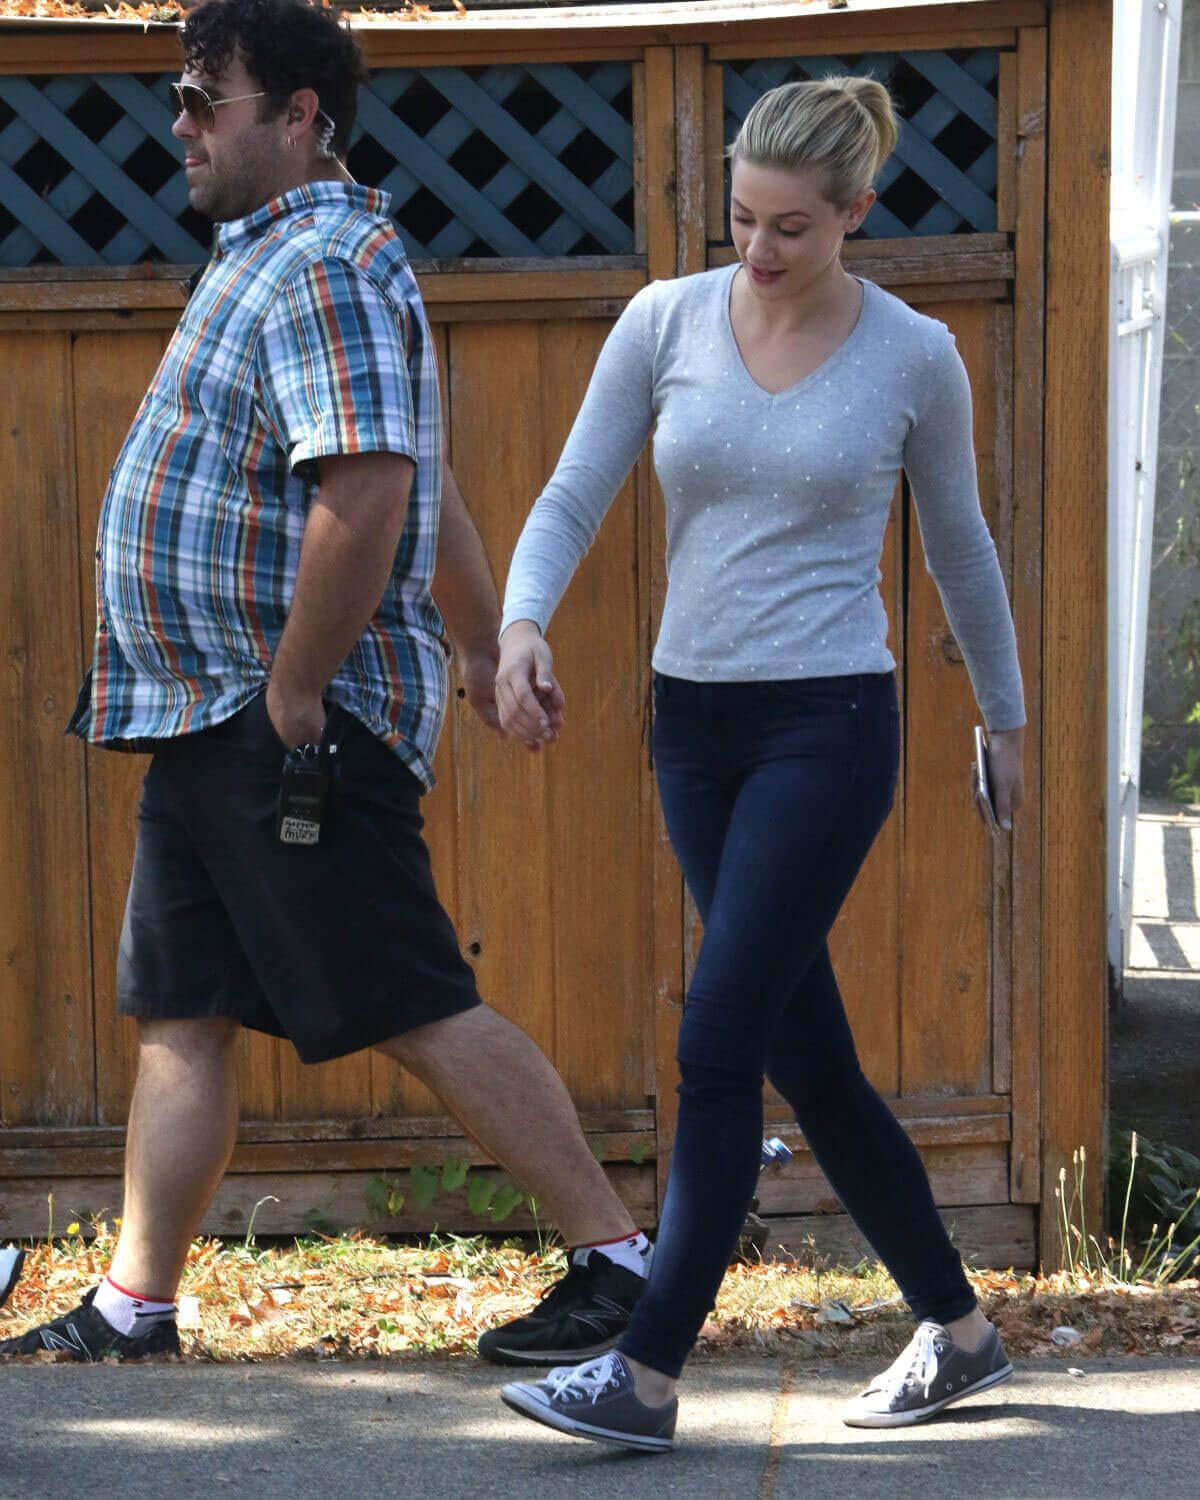 Lili Reinhart Stills on the Set of Riverdale in Vancouver